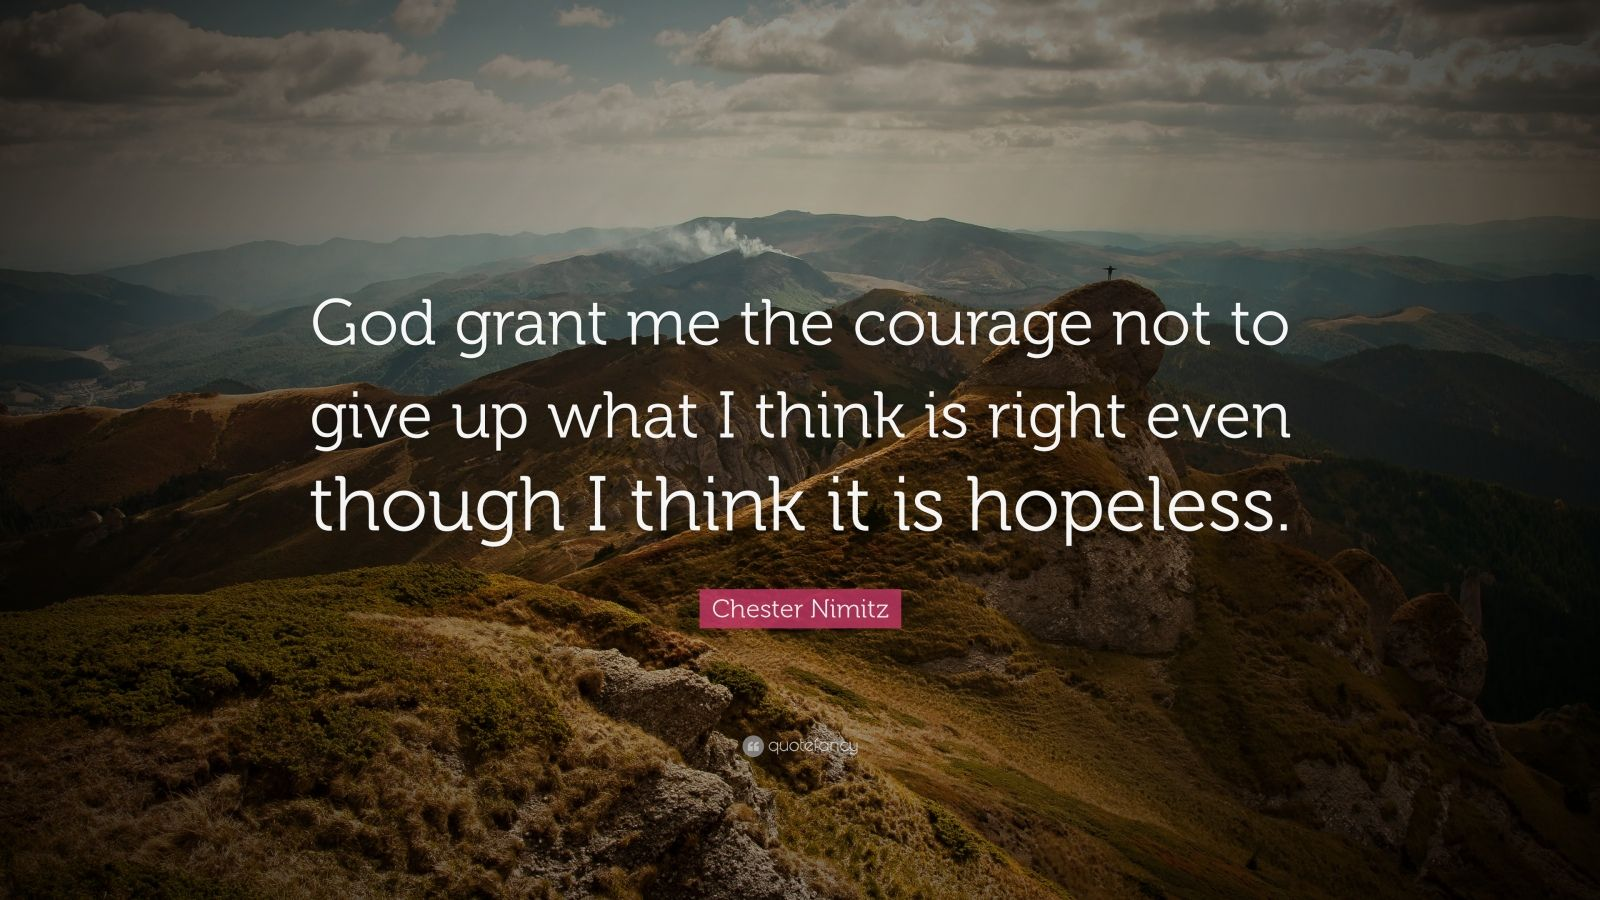 """Chester Nimitz Quote: """"God grant me the courage not to give up what I think is right even though I think it is hopeless."""""""